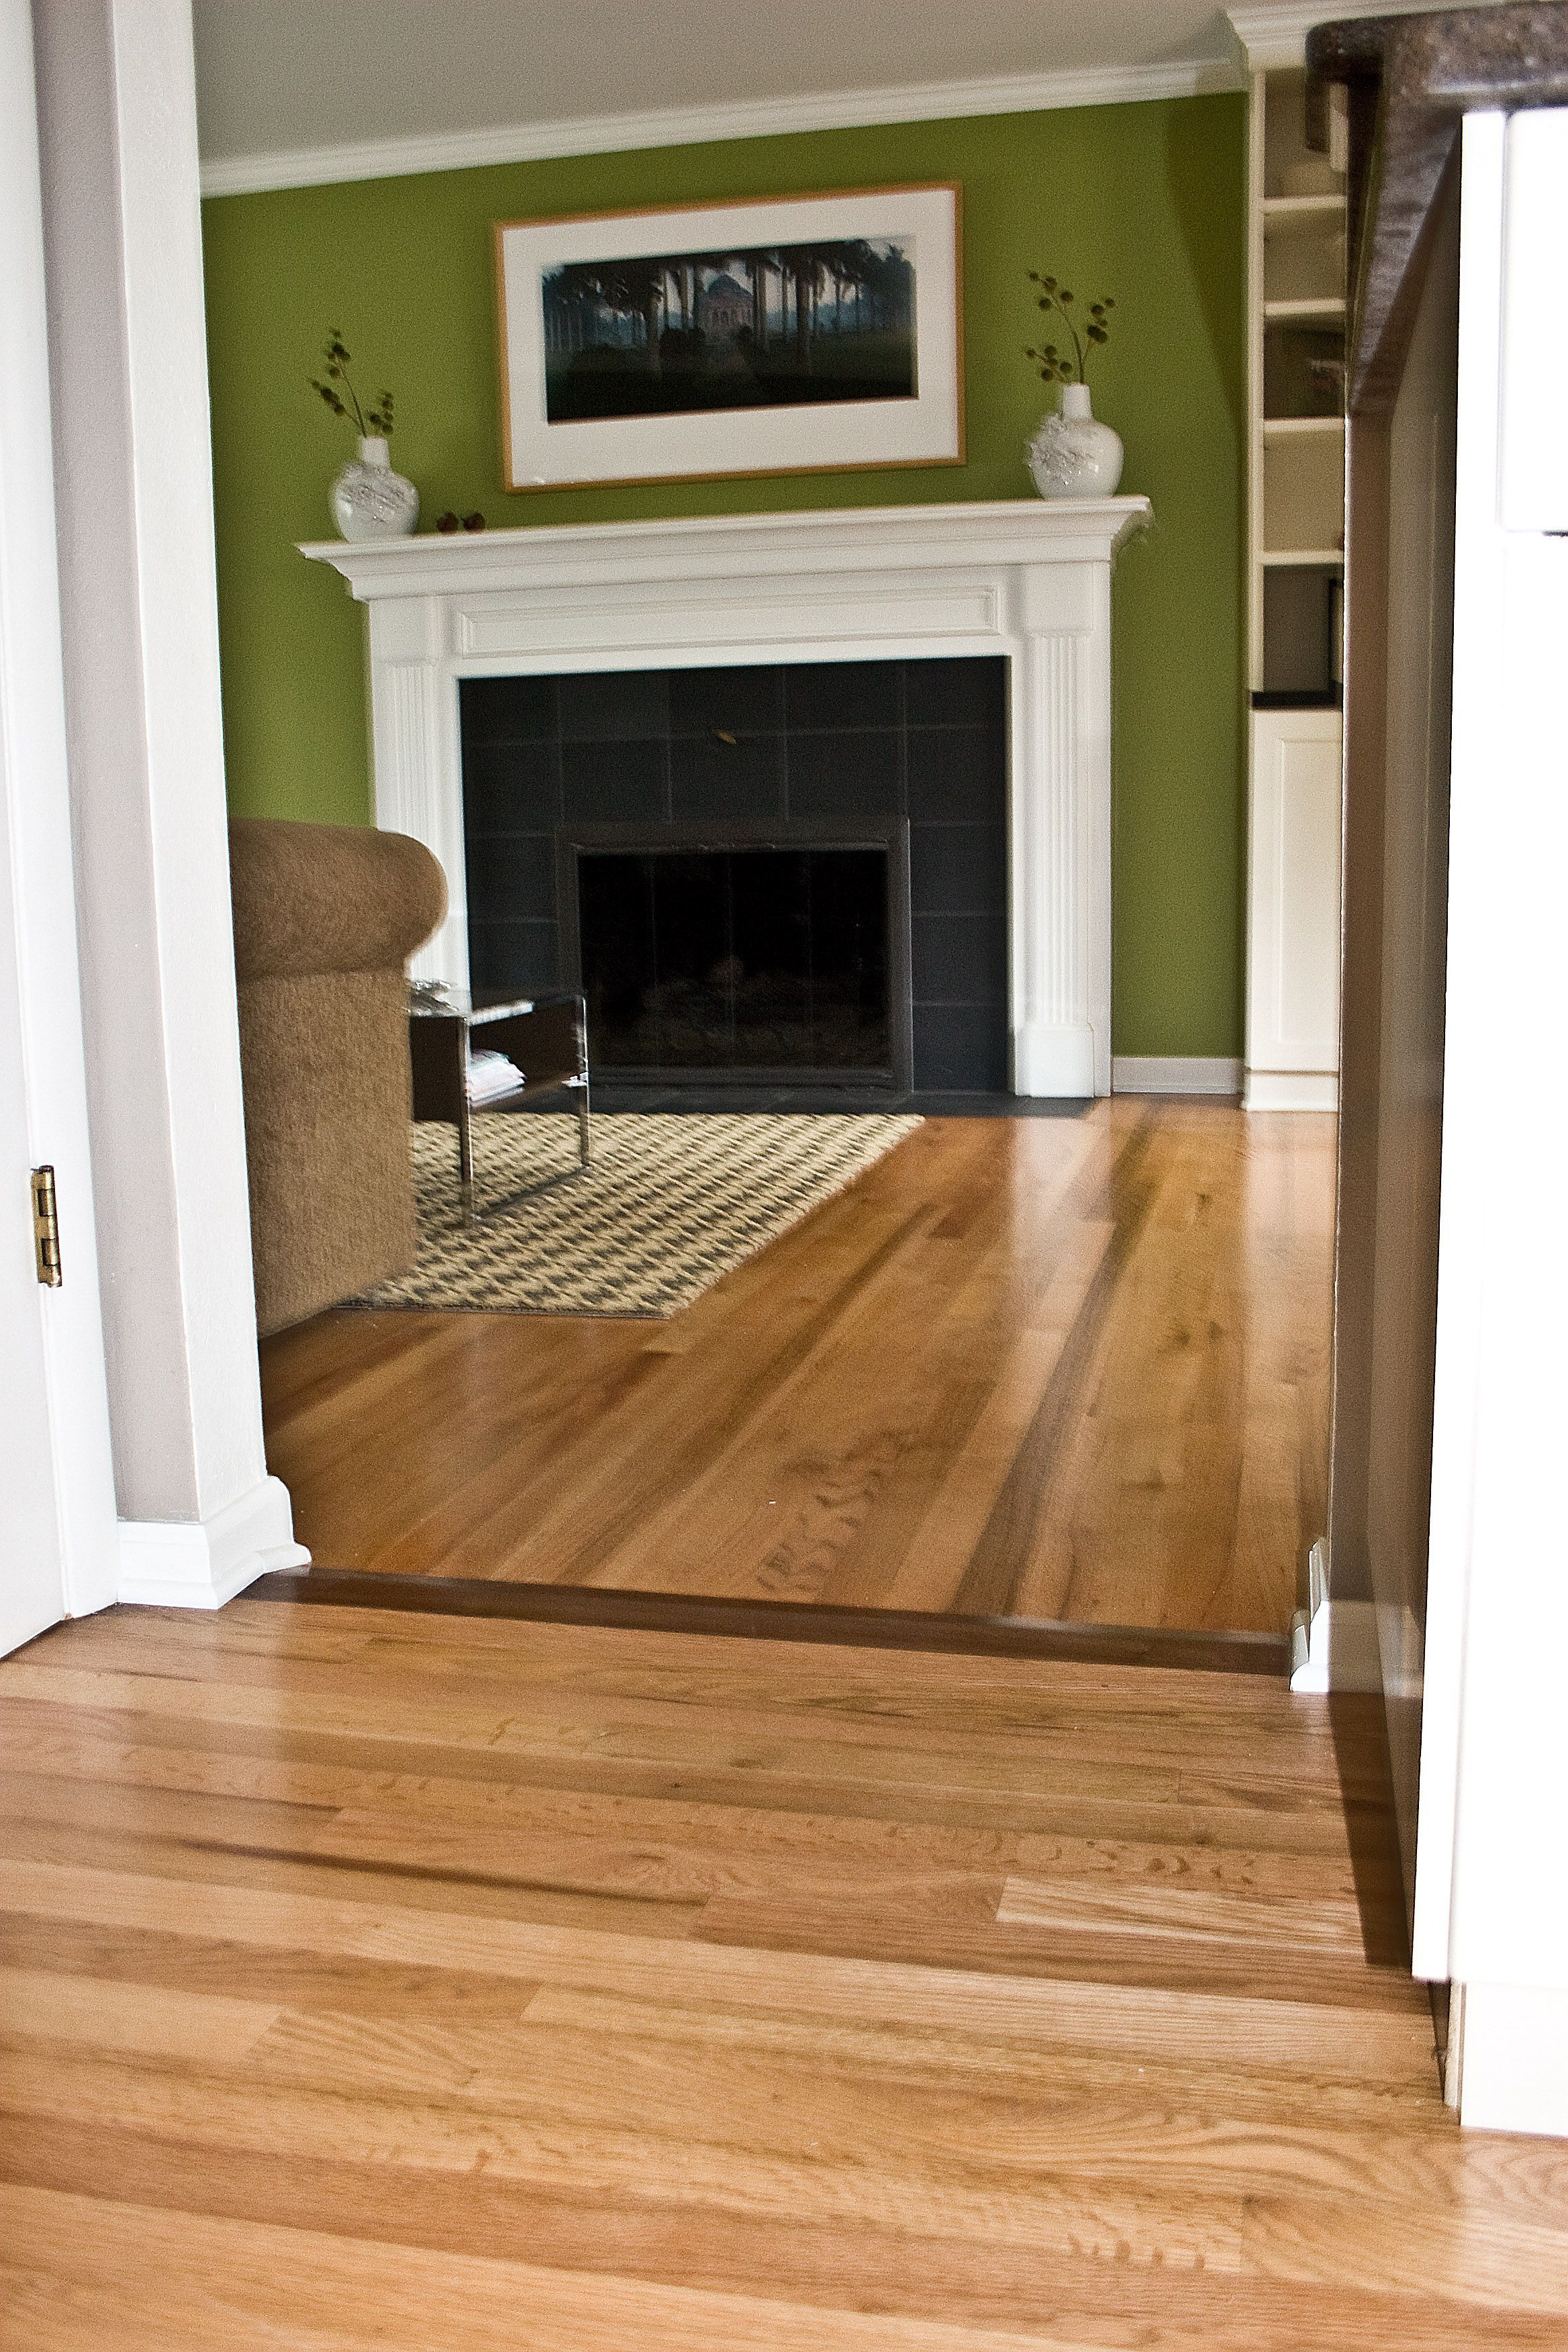 Different Hardwood Floors In Connecting Rooms Good Idea For Adding